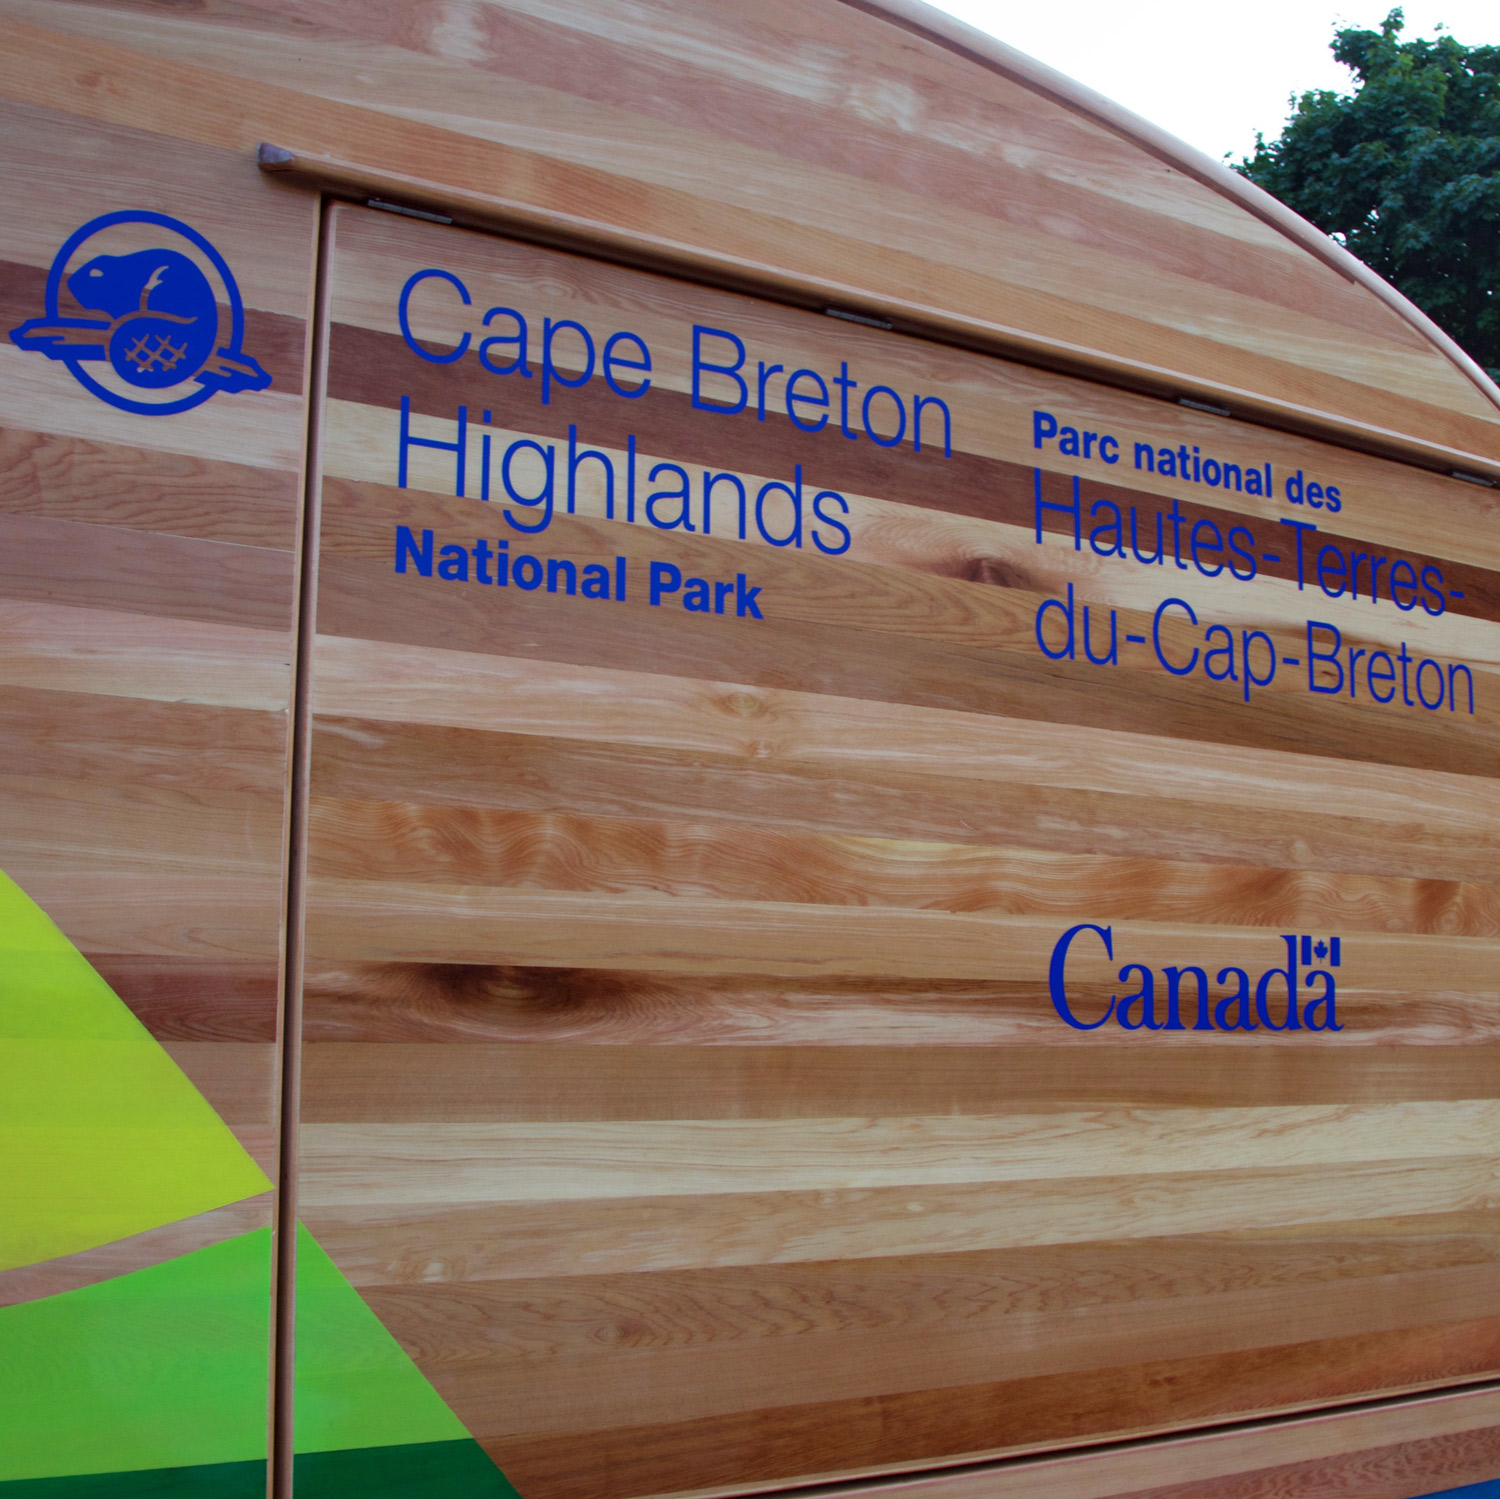 THE FEDERAL IDENTITY PROGRAM (FIP) The vehicle follows current standards for Parks Canada vehicle identification.